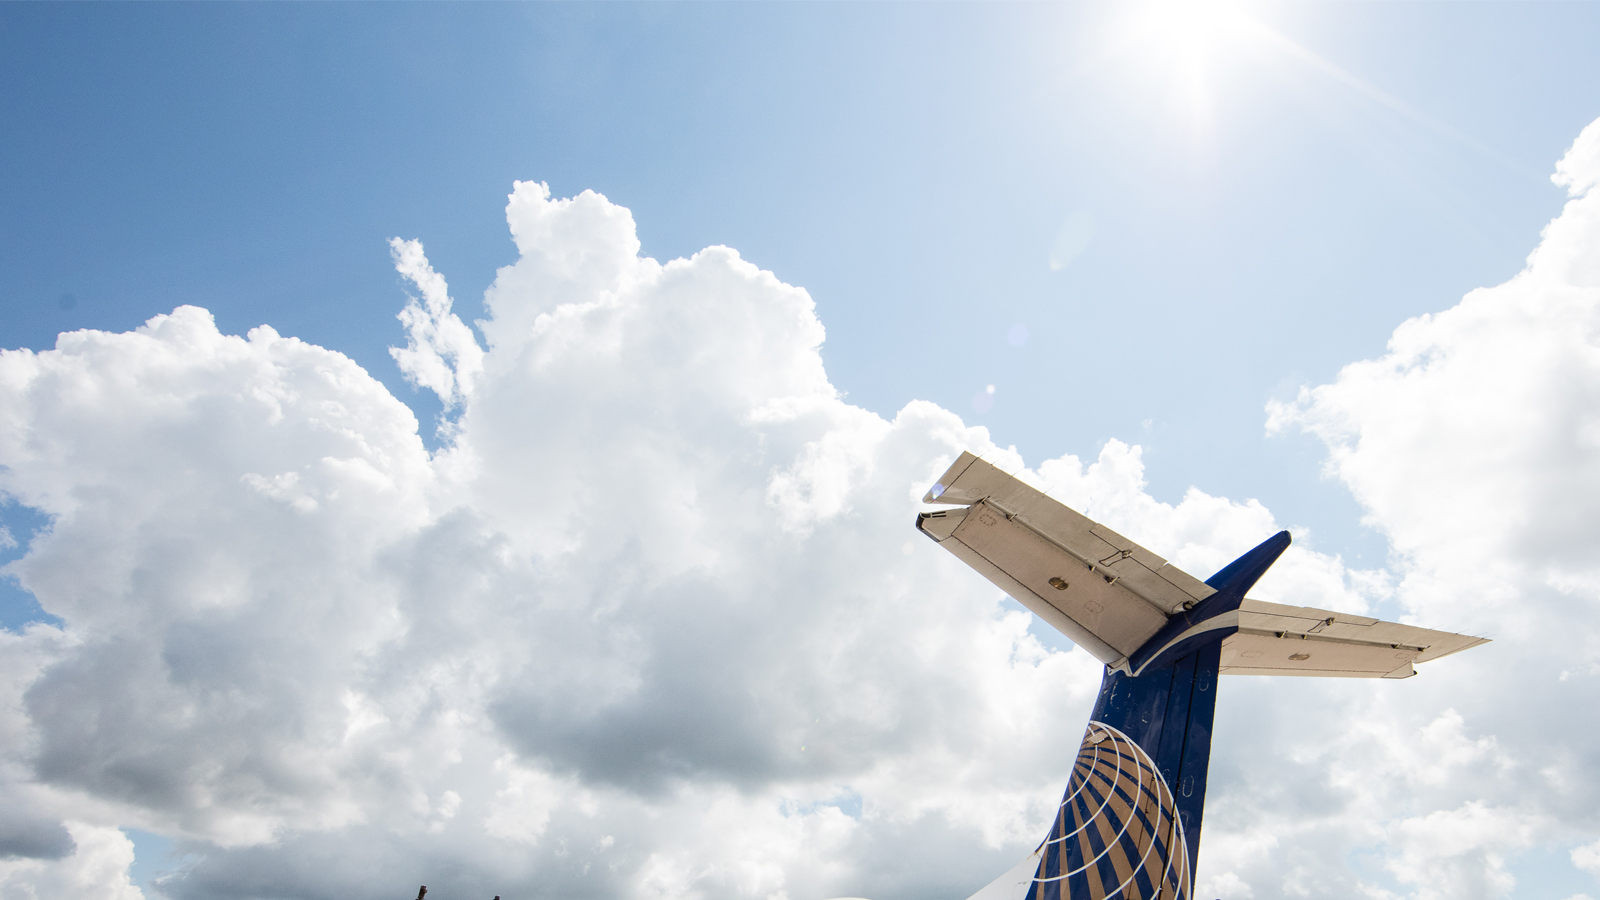 Air Service Development, Airport Planning Demand Modeling from Airline Perspective